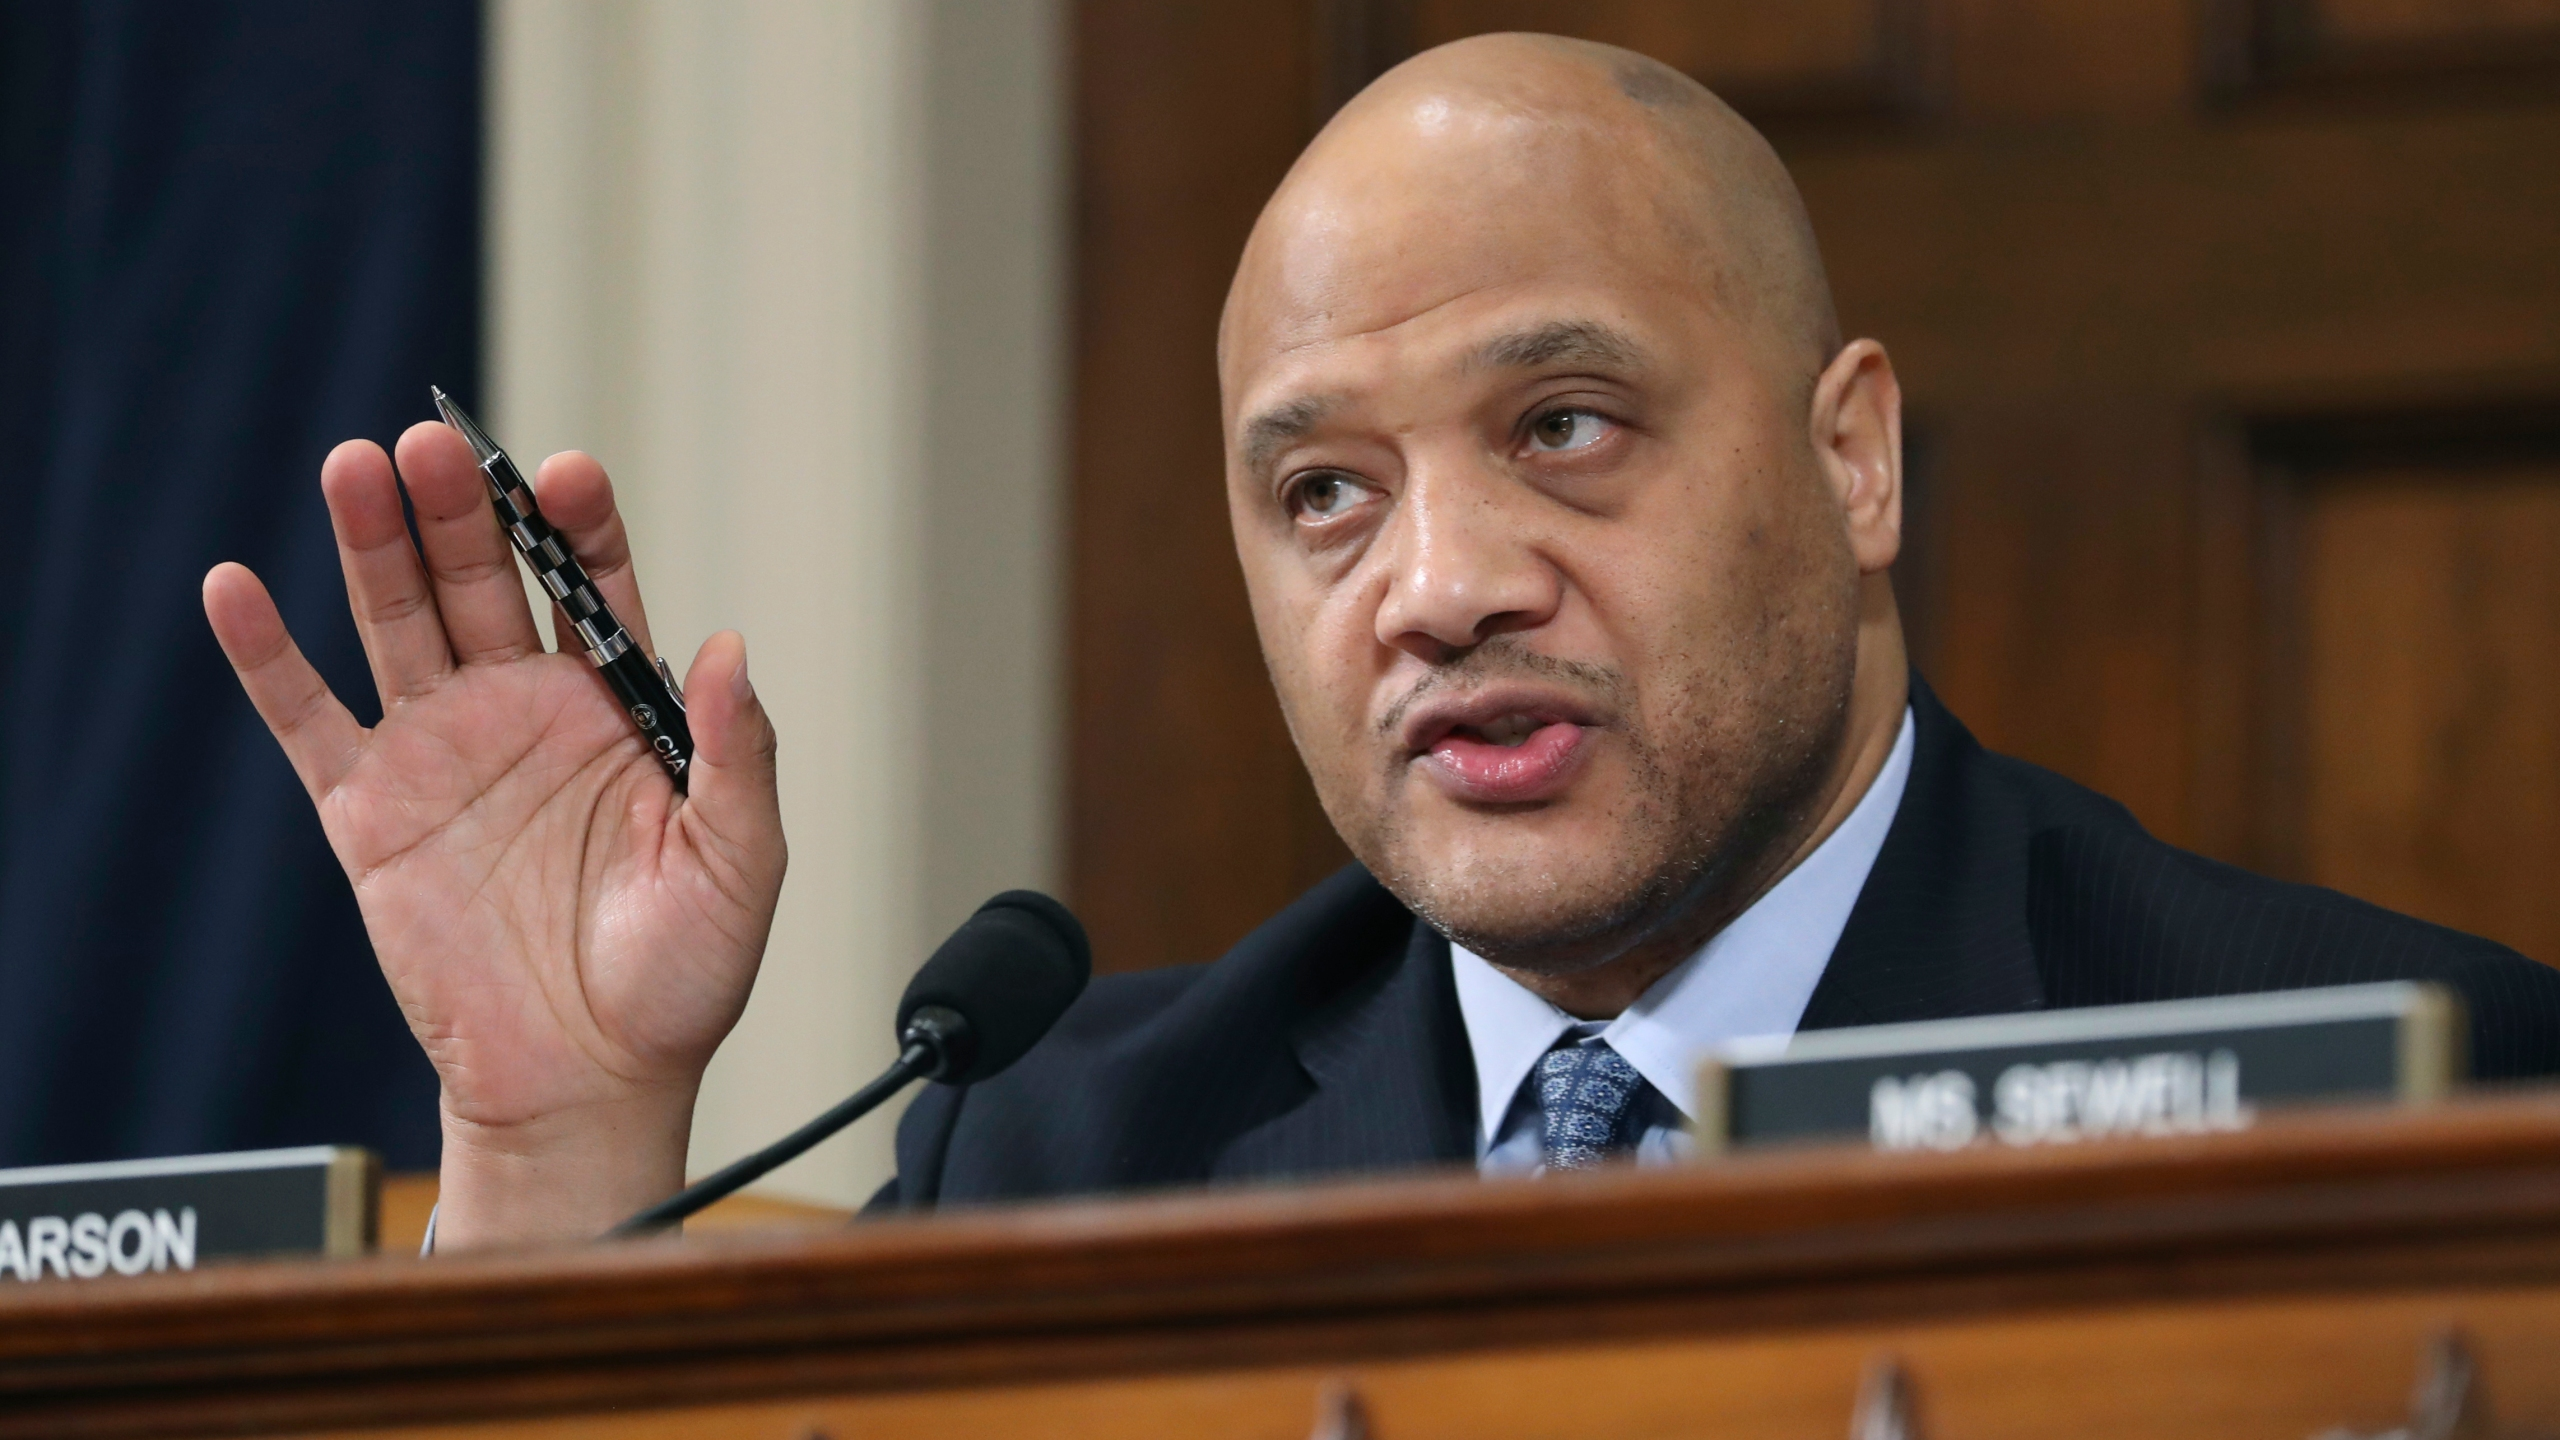 André Carson mentioned in threatening note found in truck filled with  explosives near U.S. Capitol | WTTV CBS4Indy